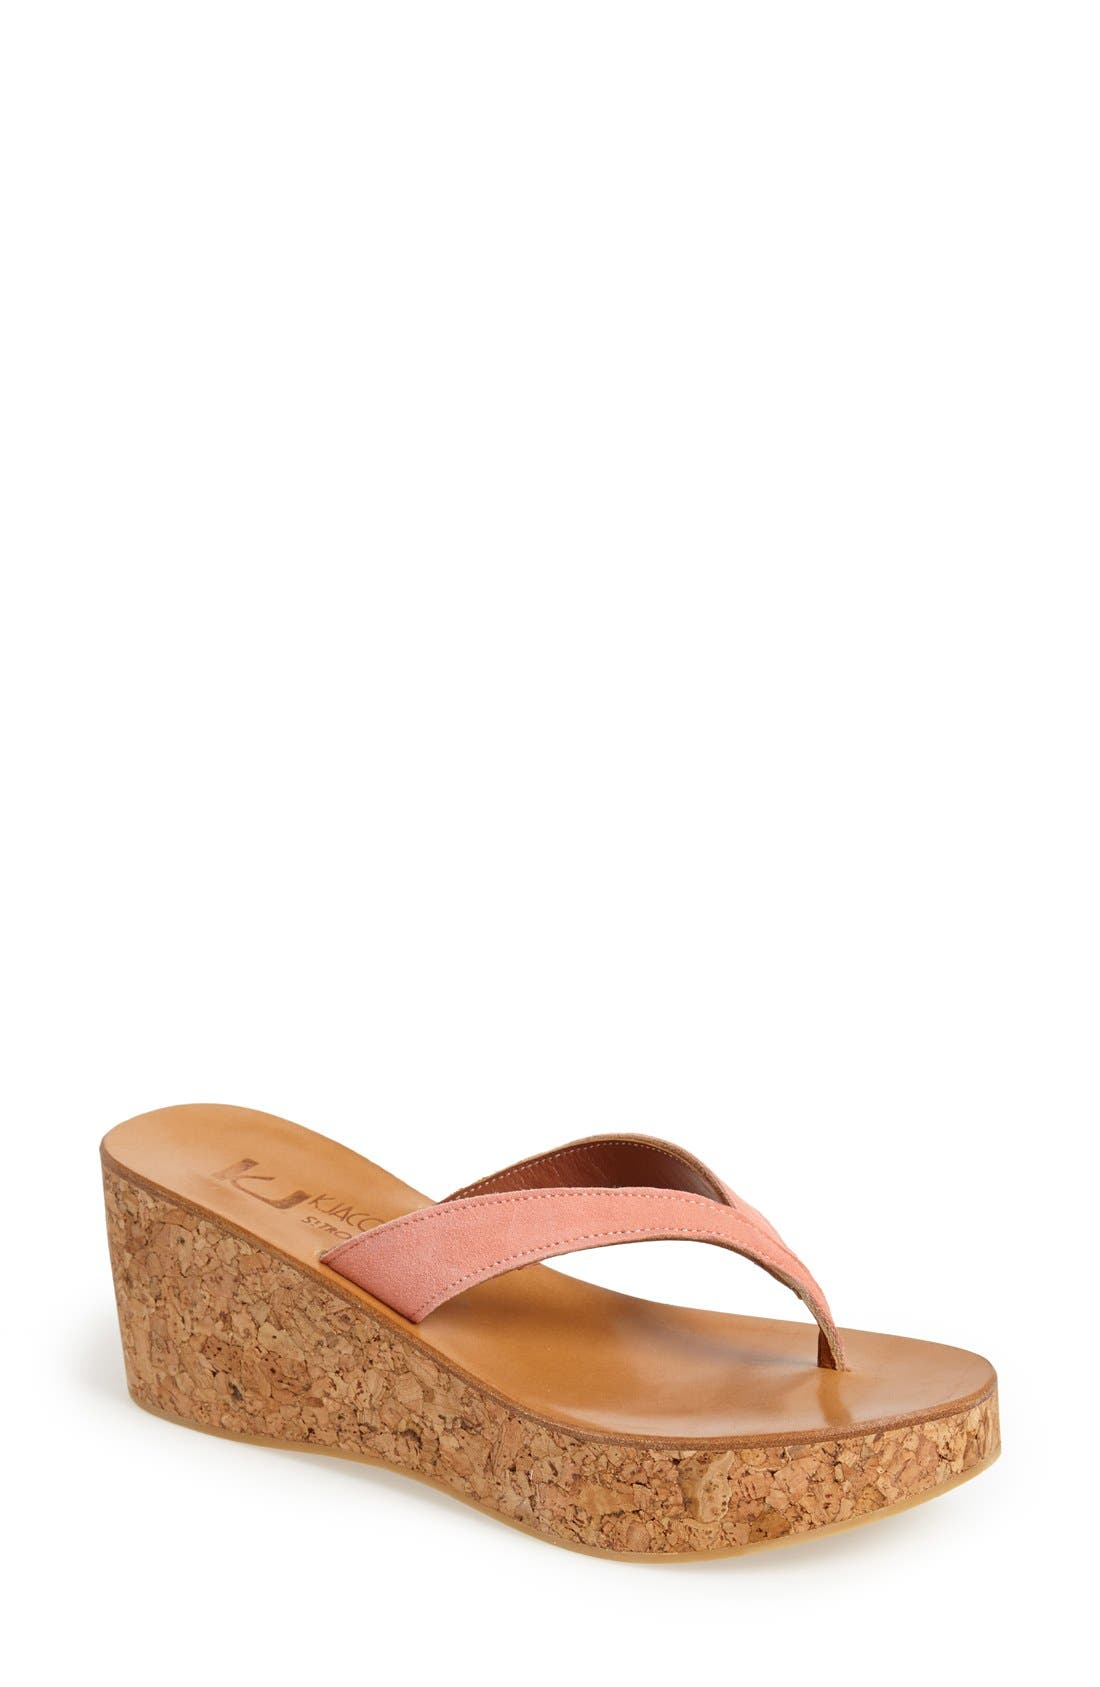 Alternate Image 1 Selected - K.Jacques St. Tropez 'Diorite' Wedge Sandal (Women)